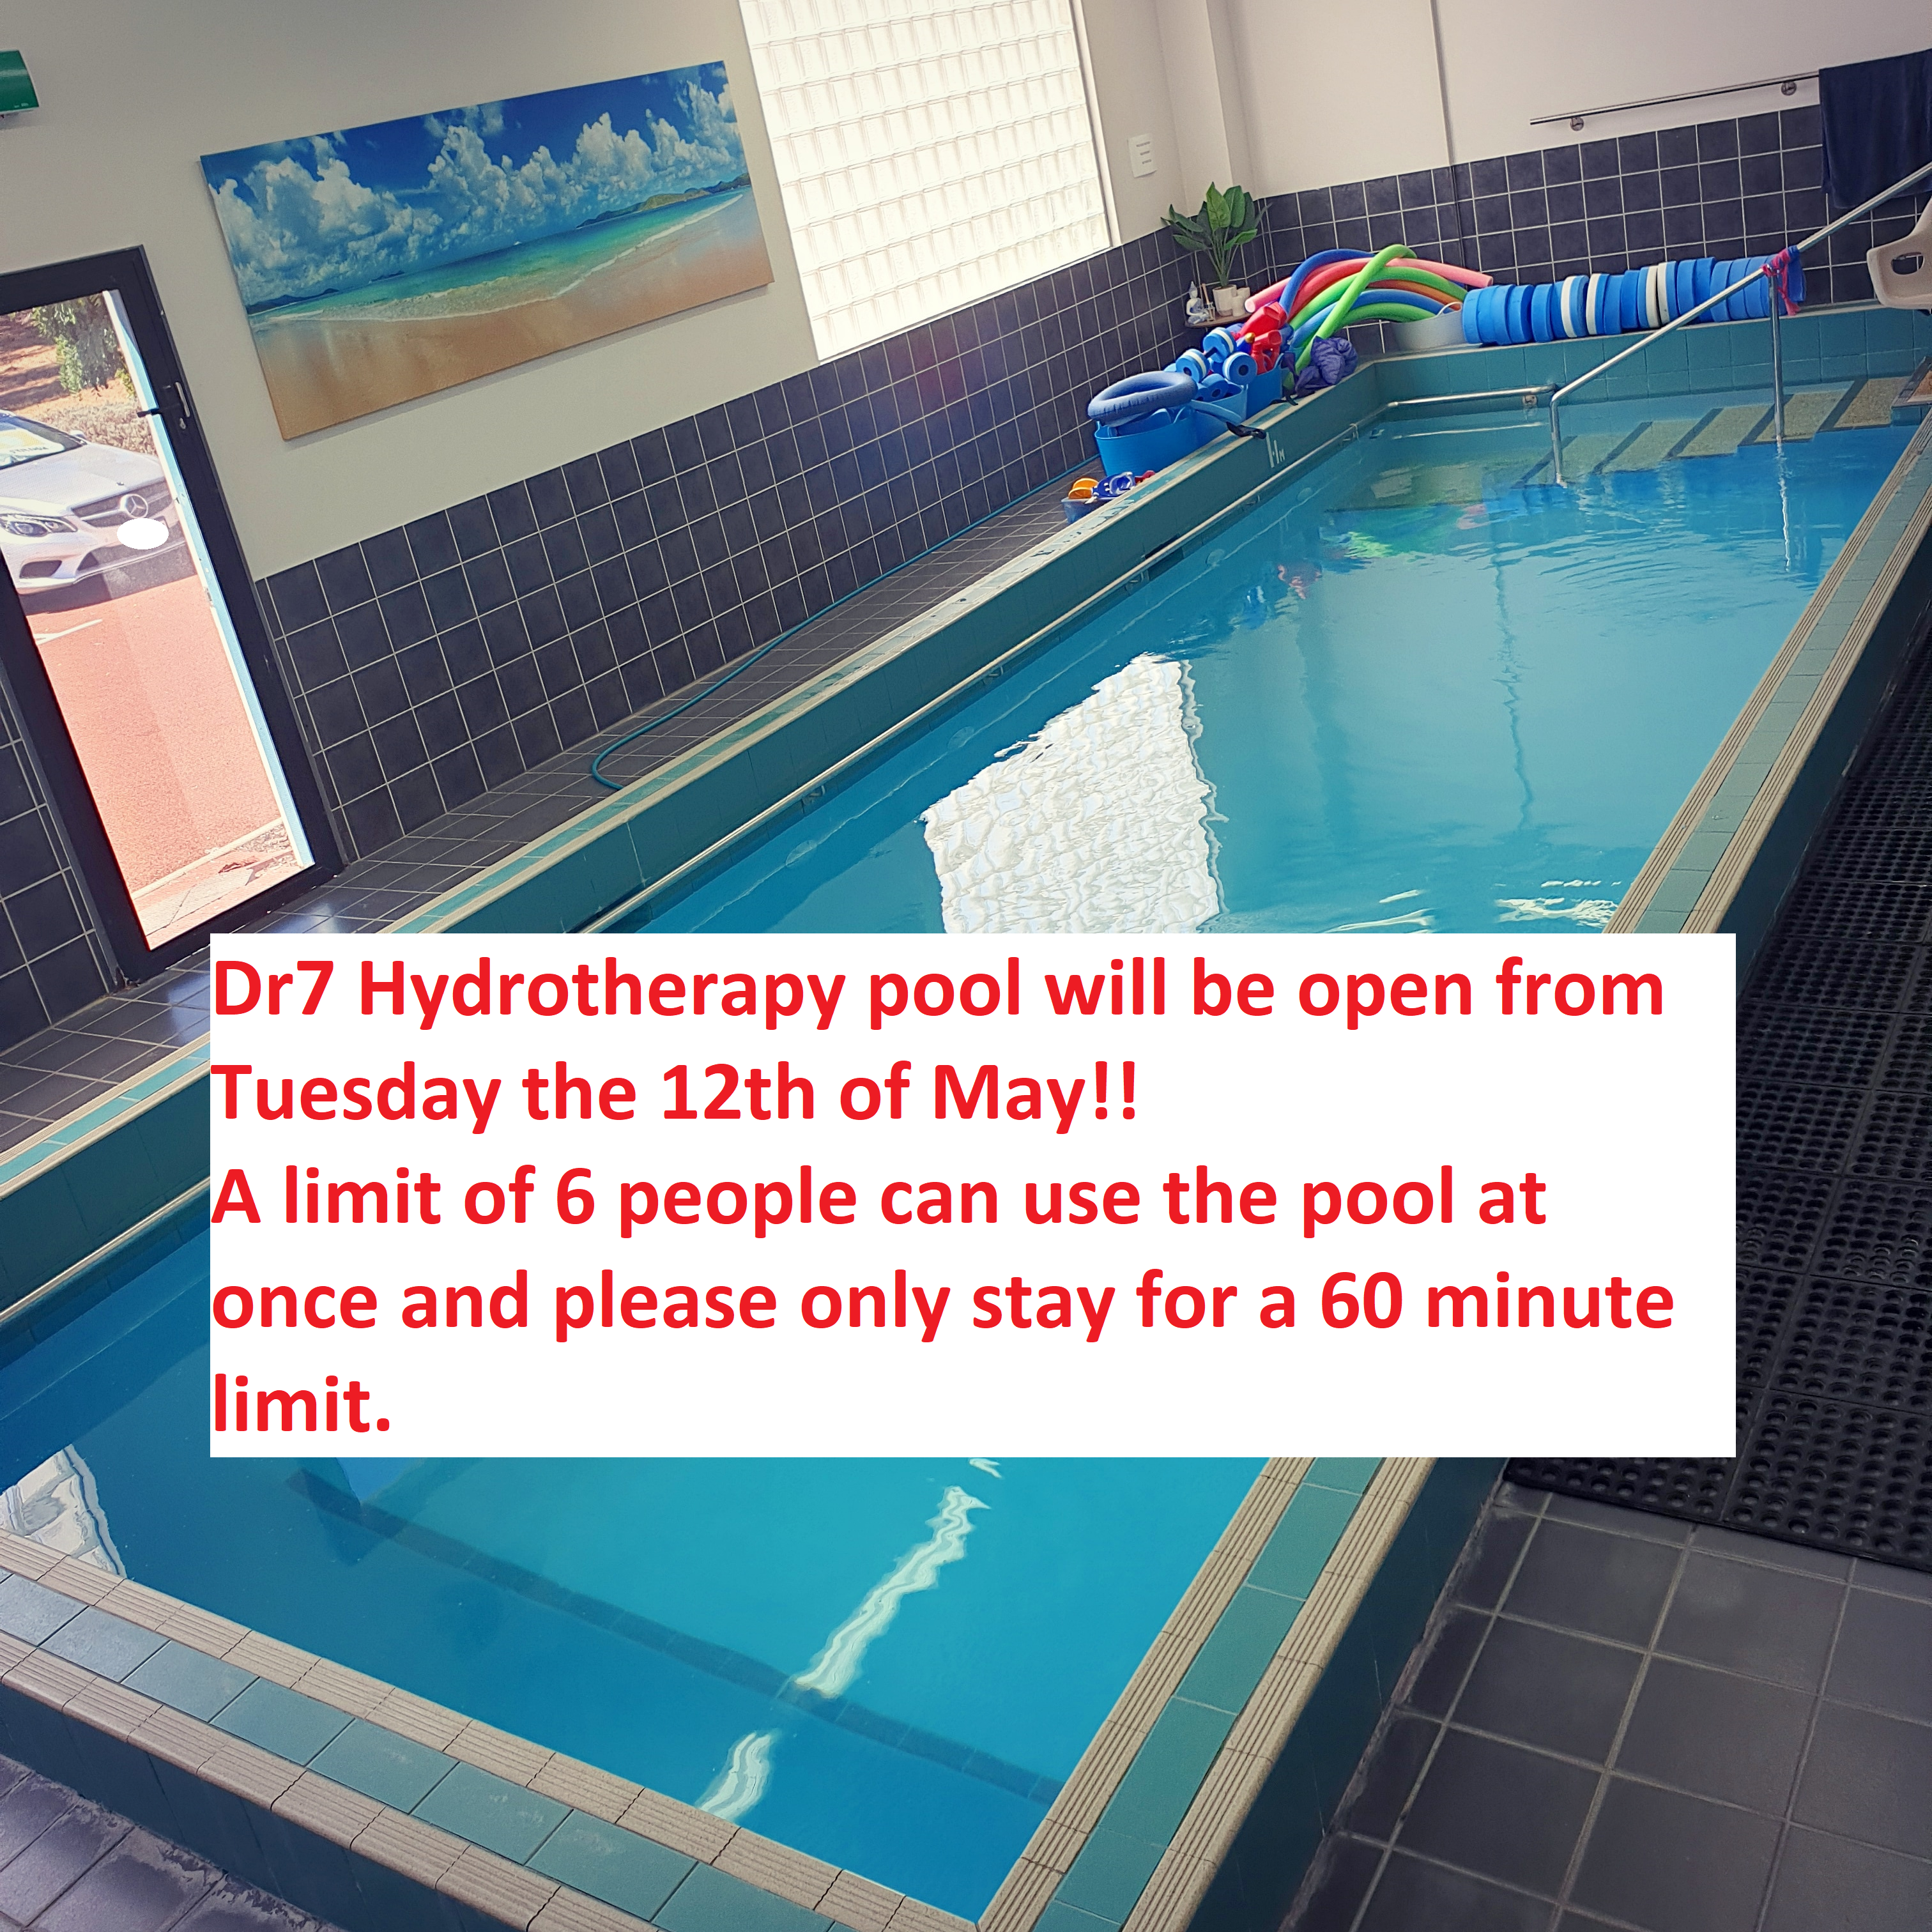 Dr7 Hydrotherapy pool is reopening to the public!